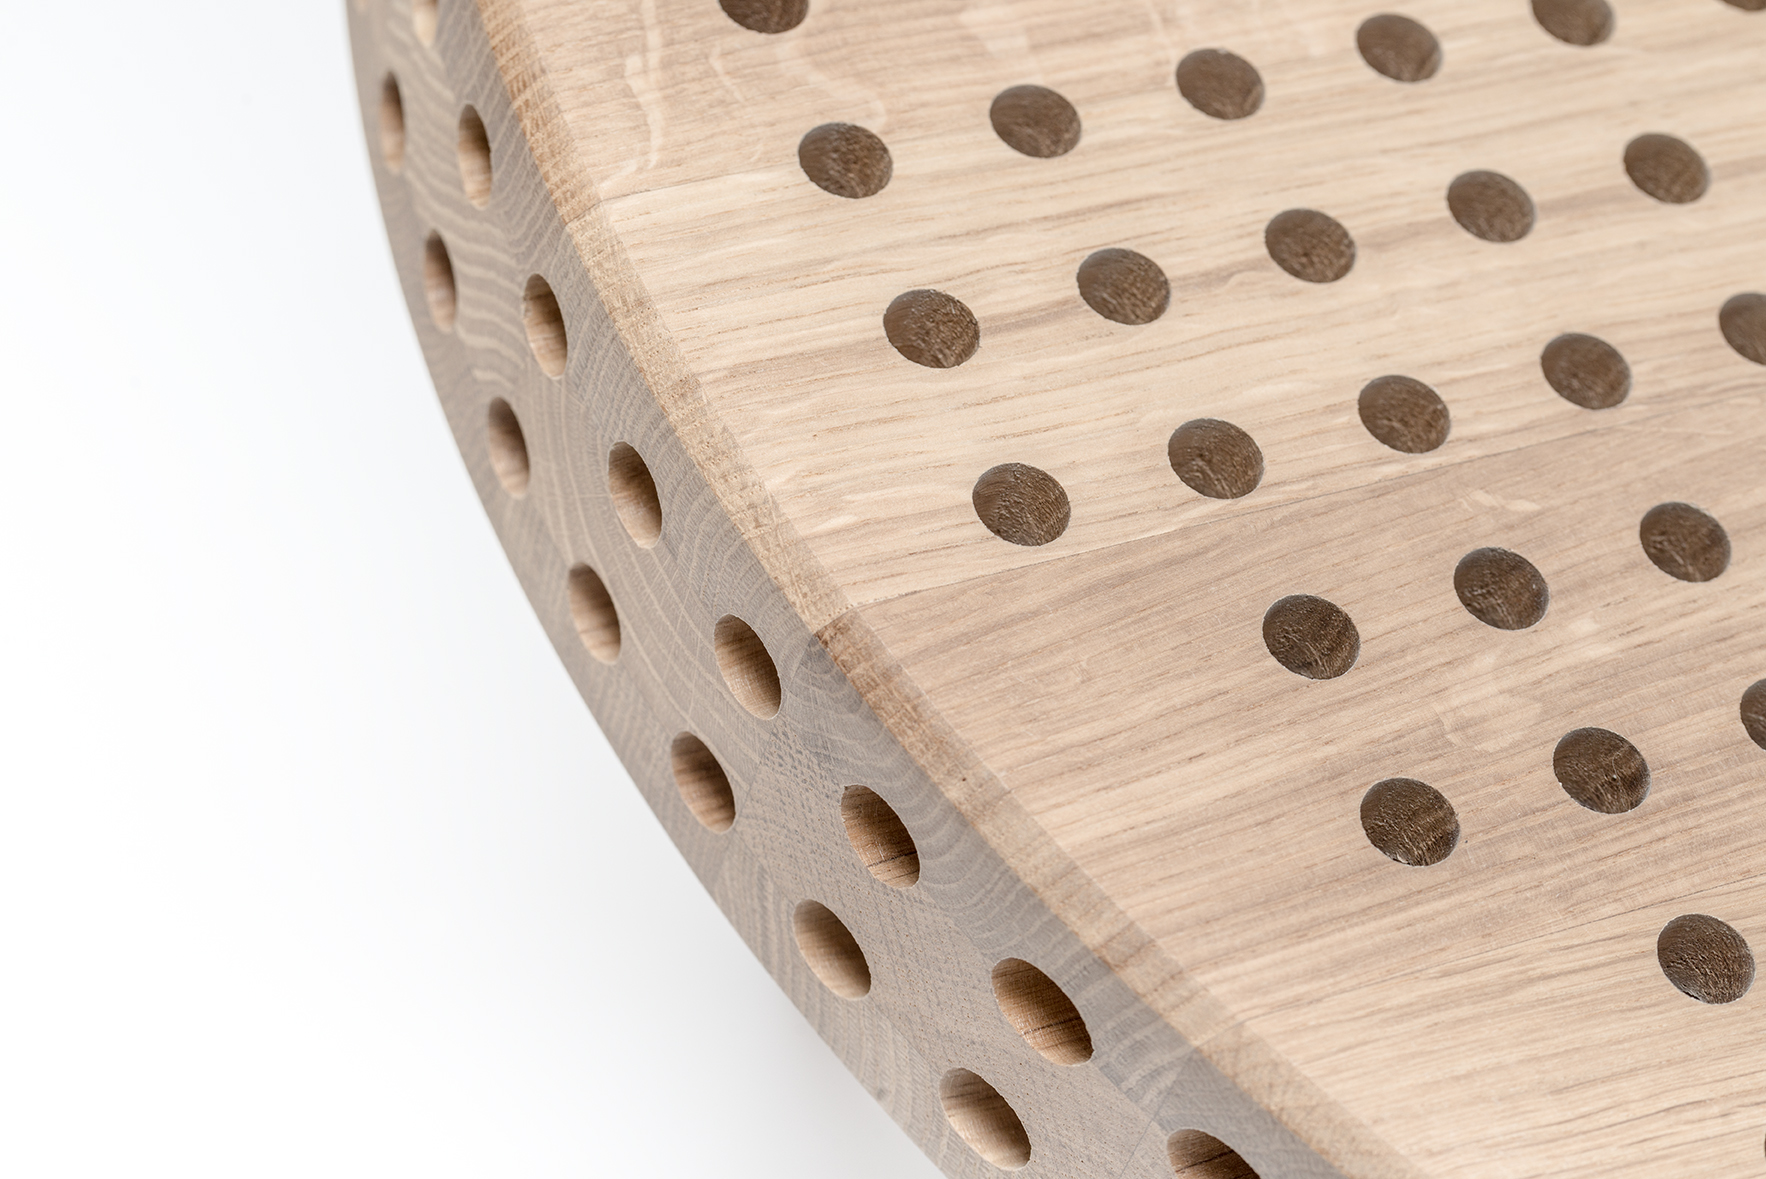 reaktor-side-table-swallow-tail-furniture-detail-3